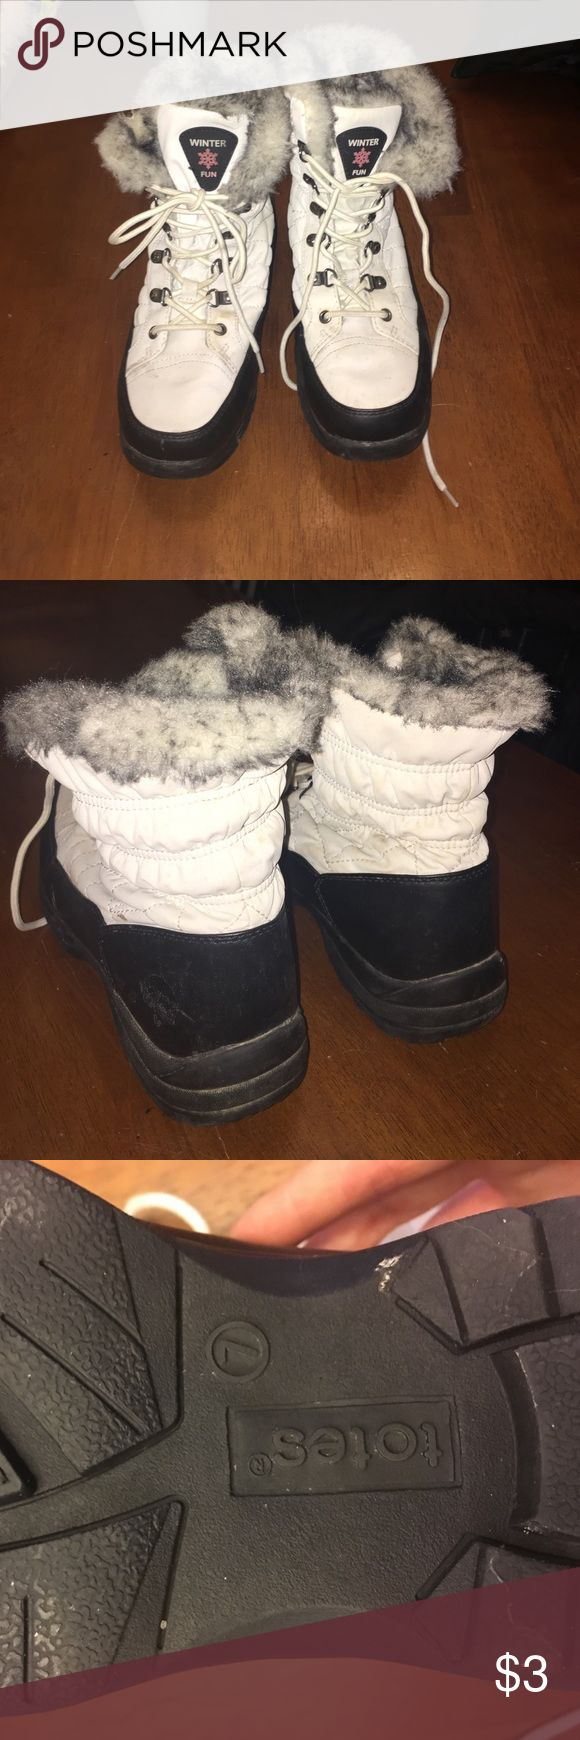 White, fur-lined winter boots, size 7 Comfy waterproof winter boots with soft fur lining. Brand is totes. Size 7. Bought from Target. Shoes Winter & Rain Boots